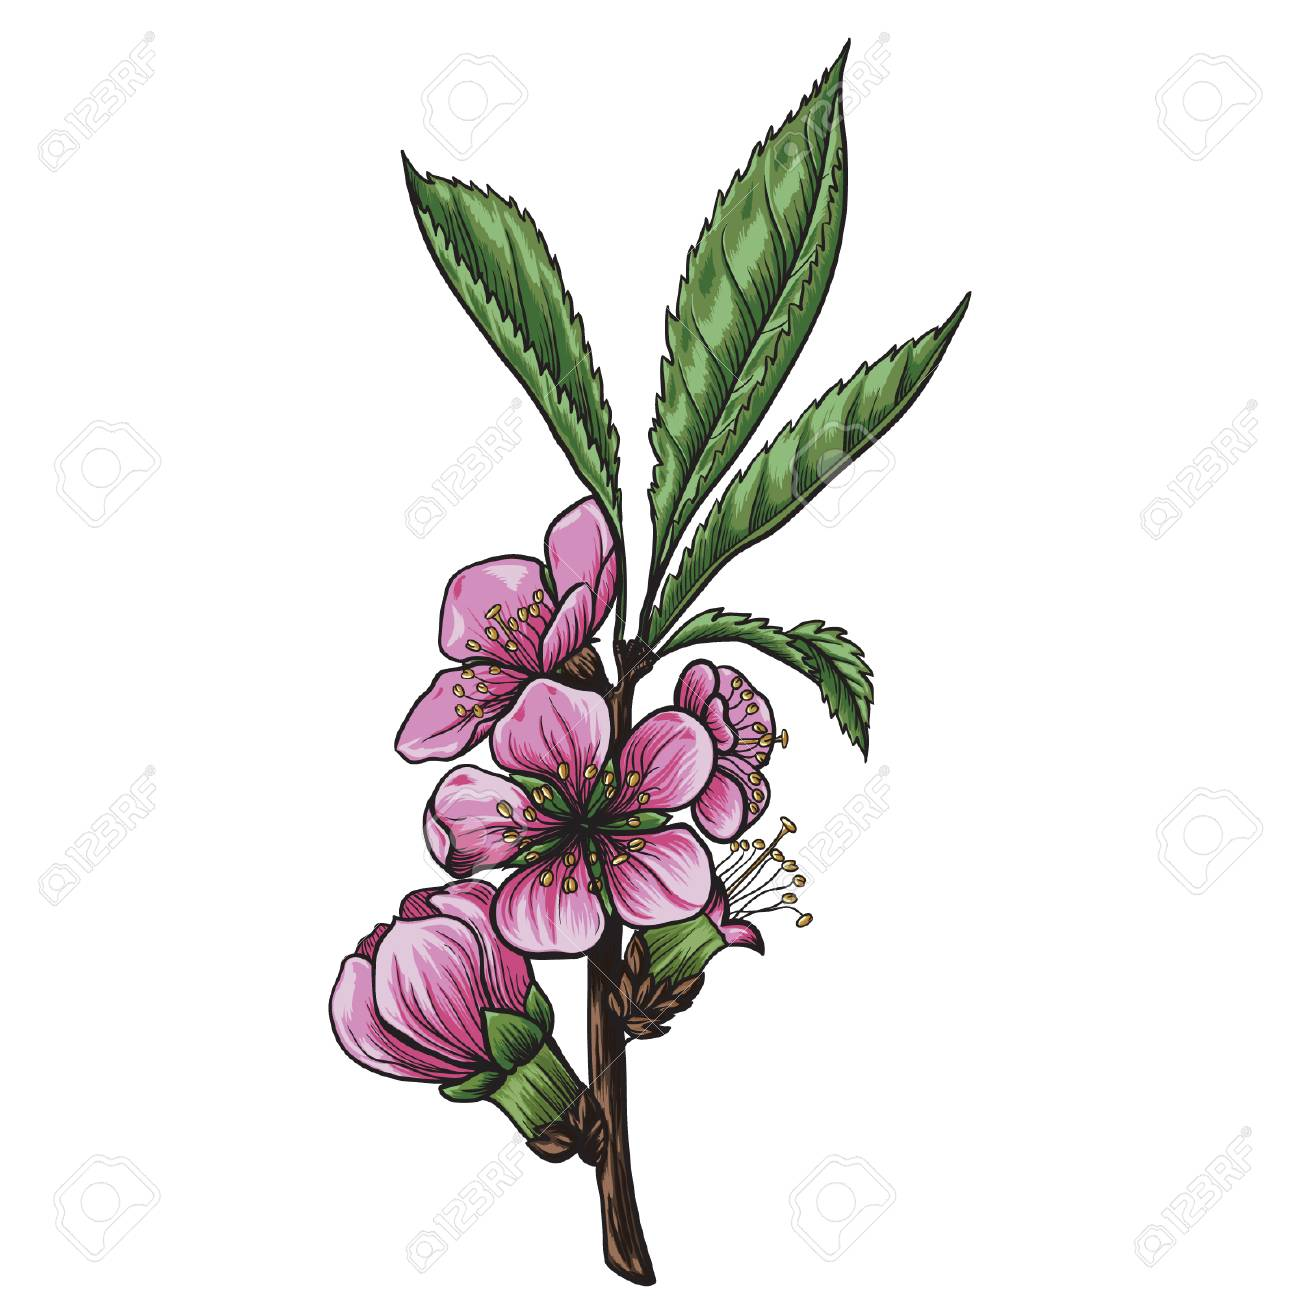 Branches Of Almond Tree With Flowers And Leaves Vector Illustration Royalty Free Cliparts Vectors And Stock Illustration Image 95932448